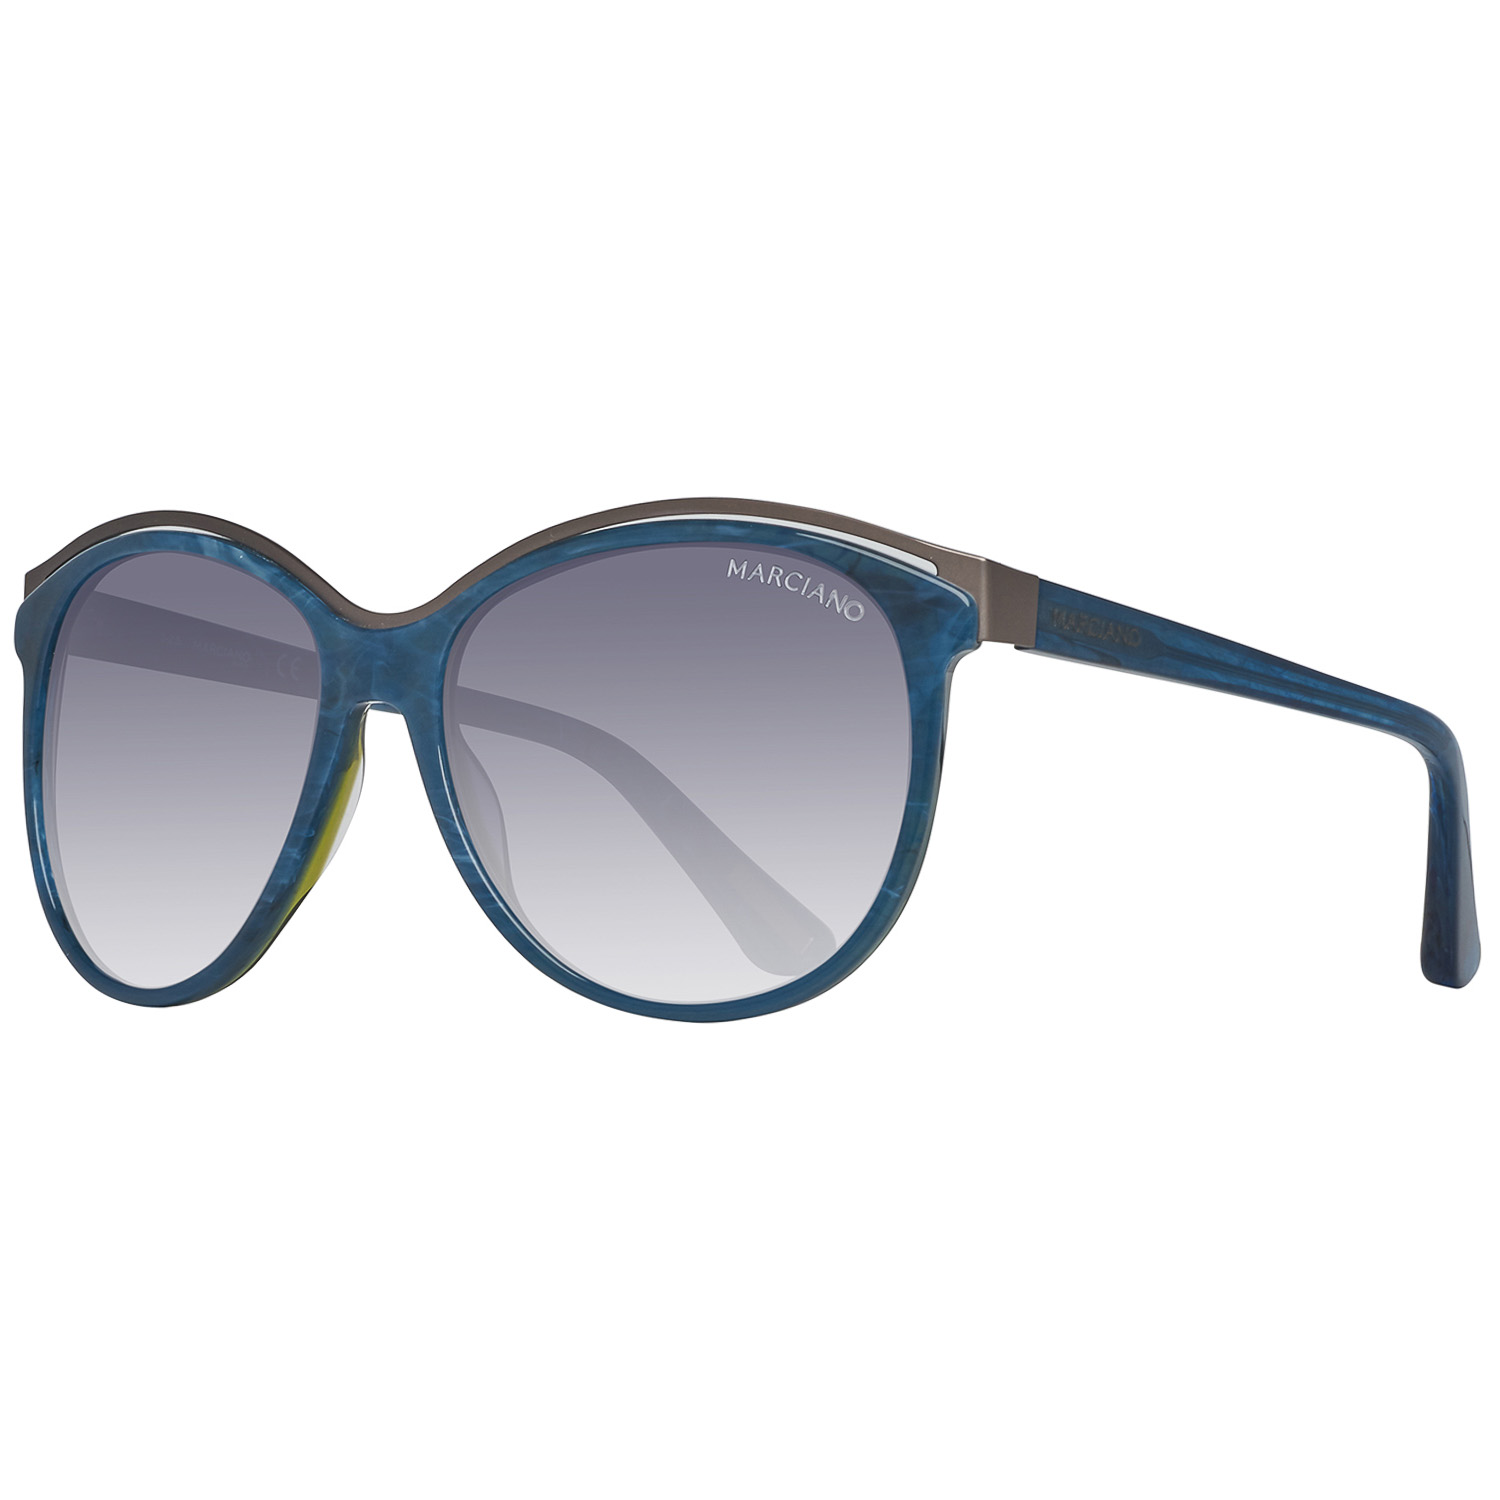 Guess By Marciano Sunglasses GM0744 92B 57 Blue